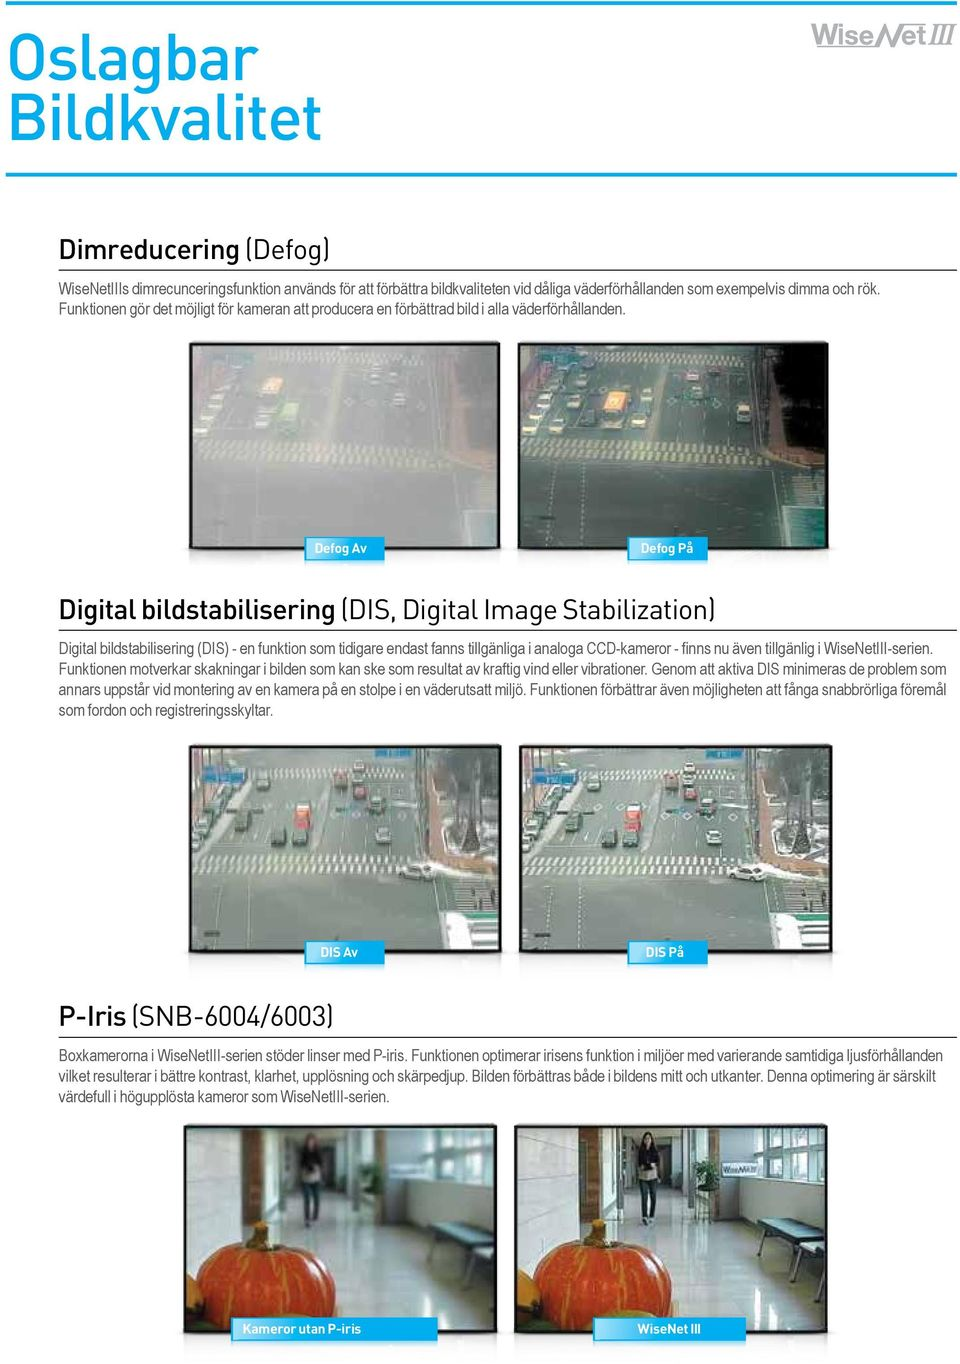 Defog Av Defog På Defog OFF Defog ON Digital bildstabilisering (DIS, Digital Image Stabilization) Digital bildstabilisering (DIS) - en funktion som tidigare endast fanns tillgänliga i analoga